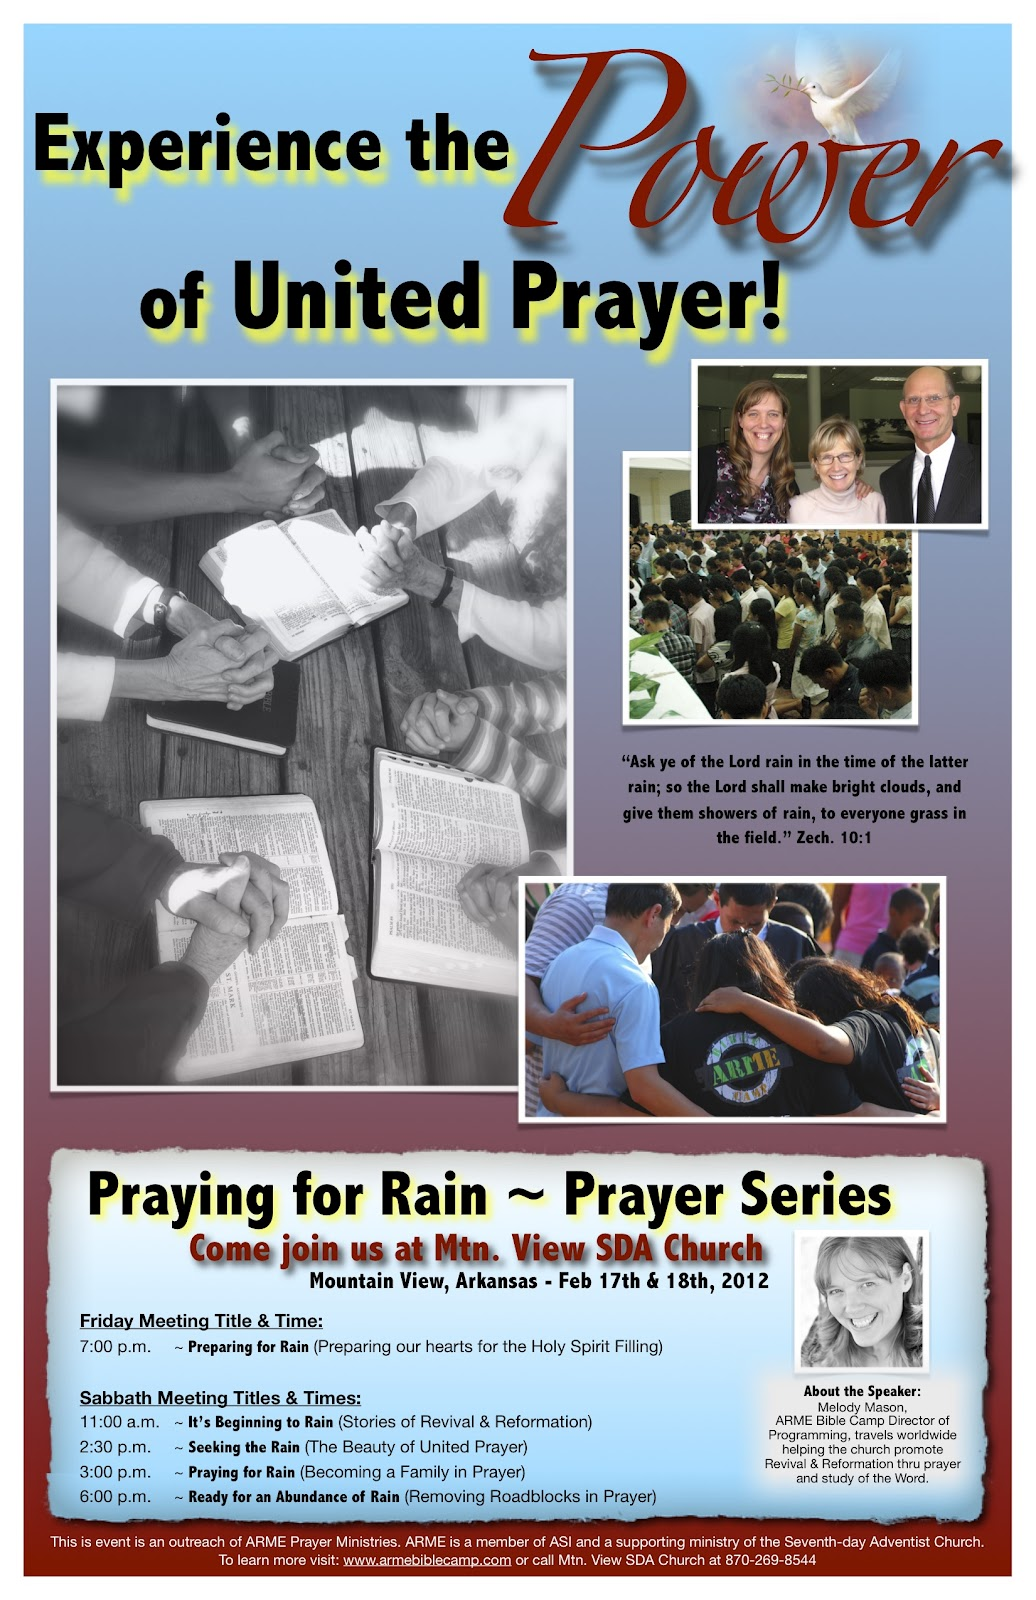 Melodious Thoughts & Blessings: Come Join us Feb 18th - Praying for Rain